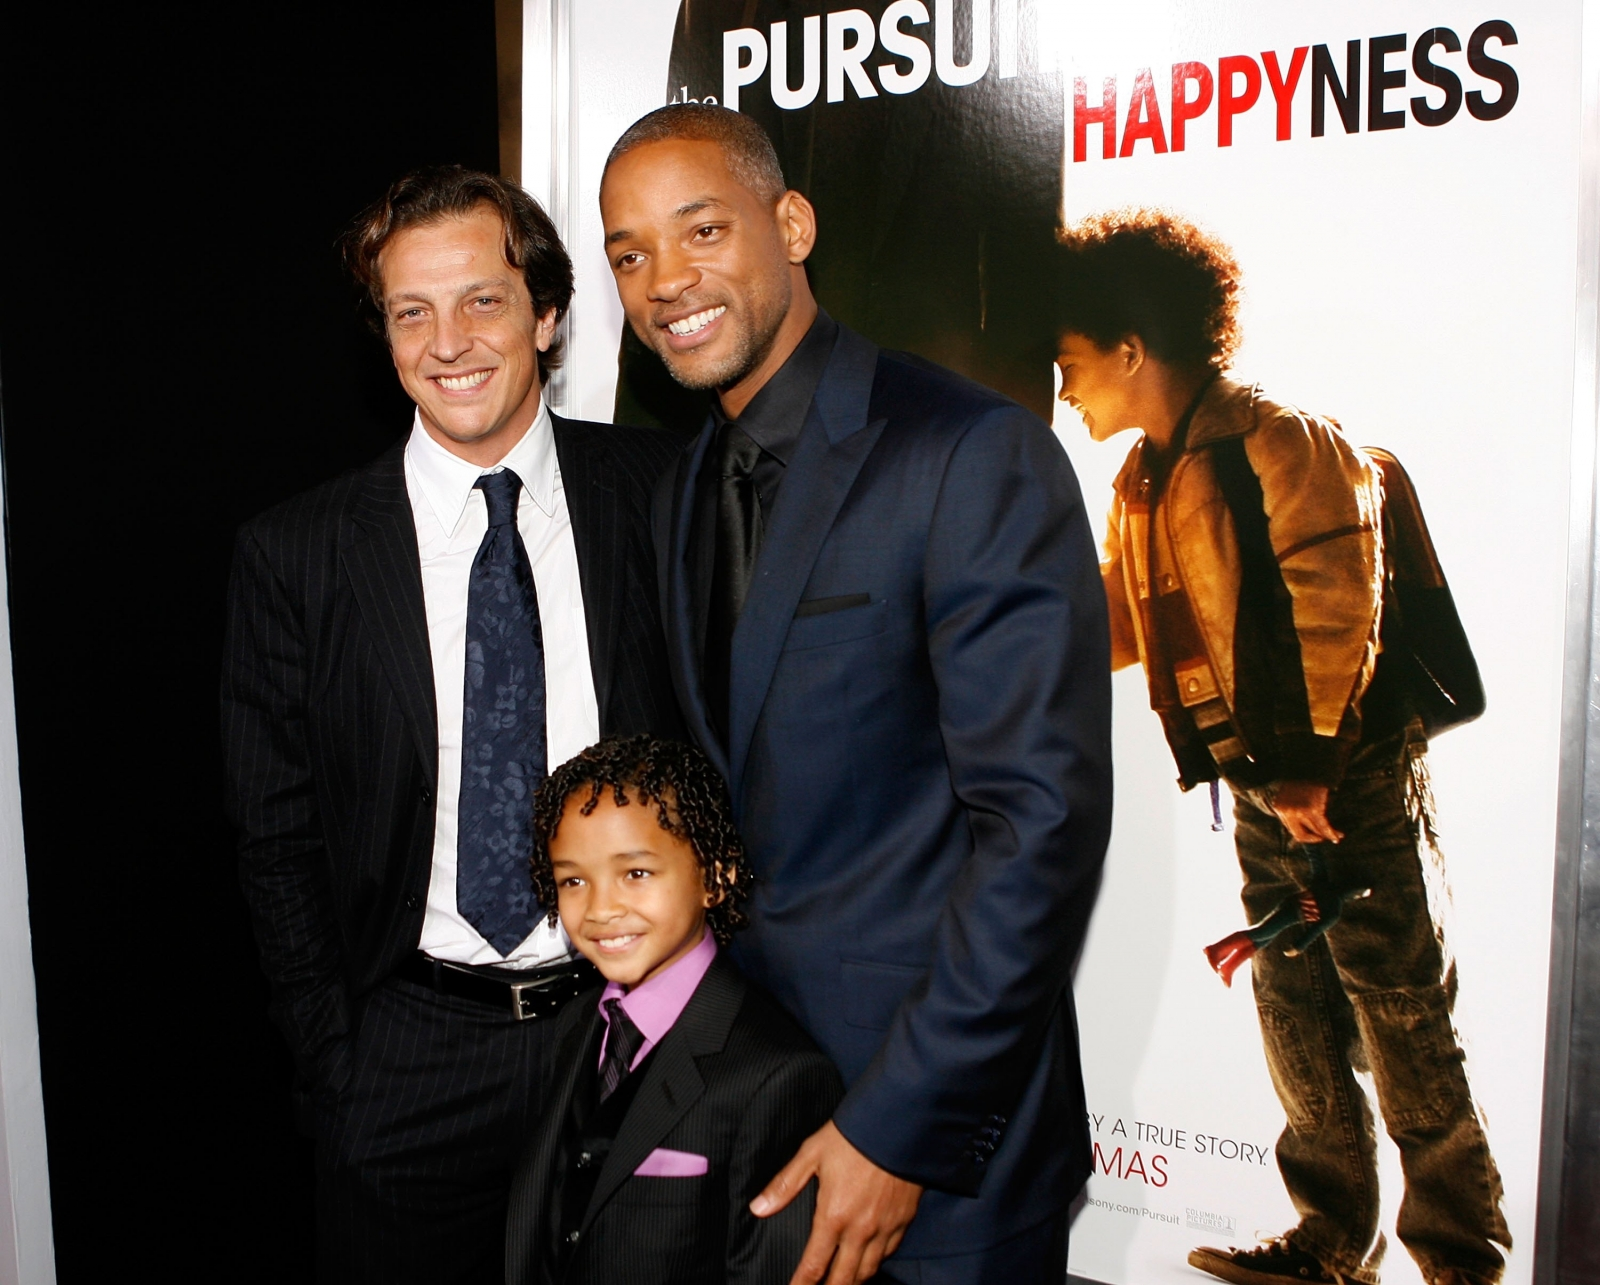 Pursuit of Happyness director Gabriele Muccino